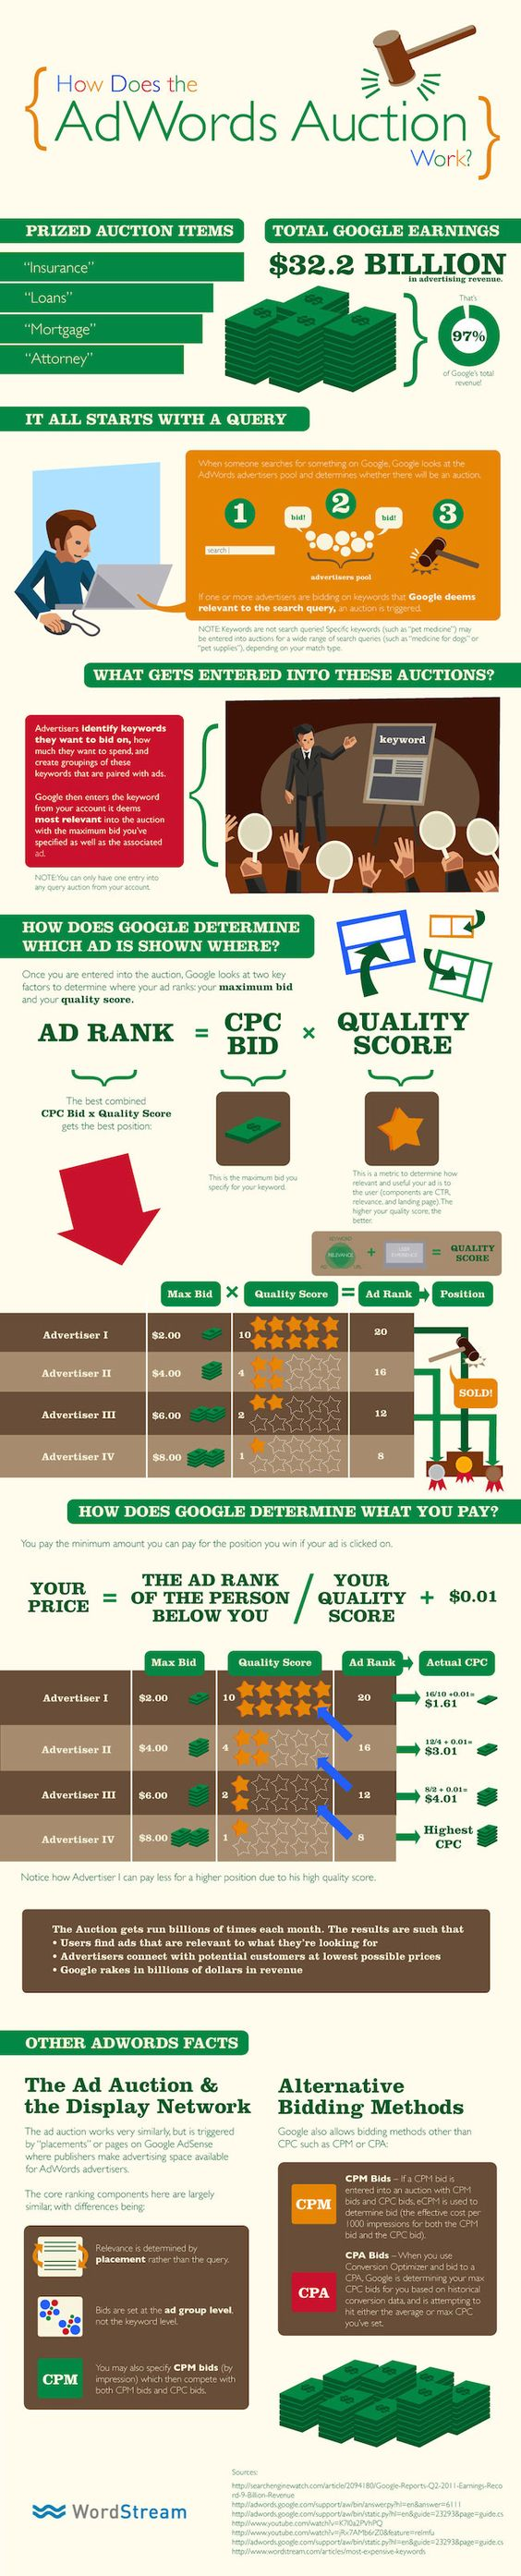 How does Google AdWords work? fromWordStream